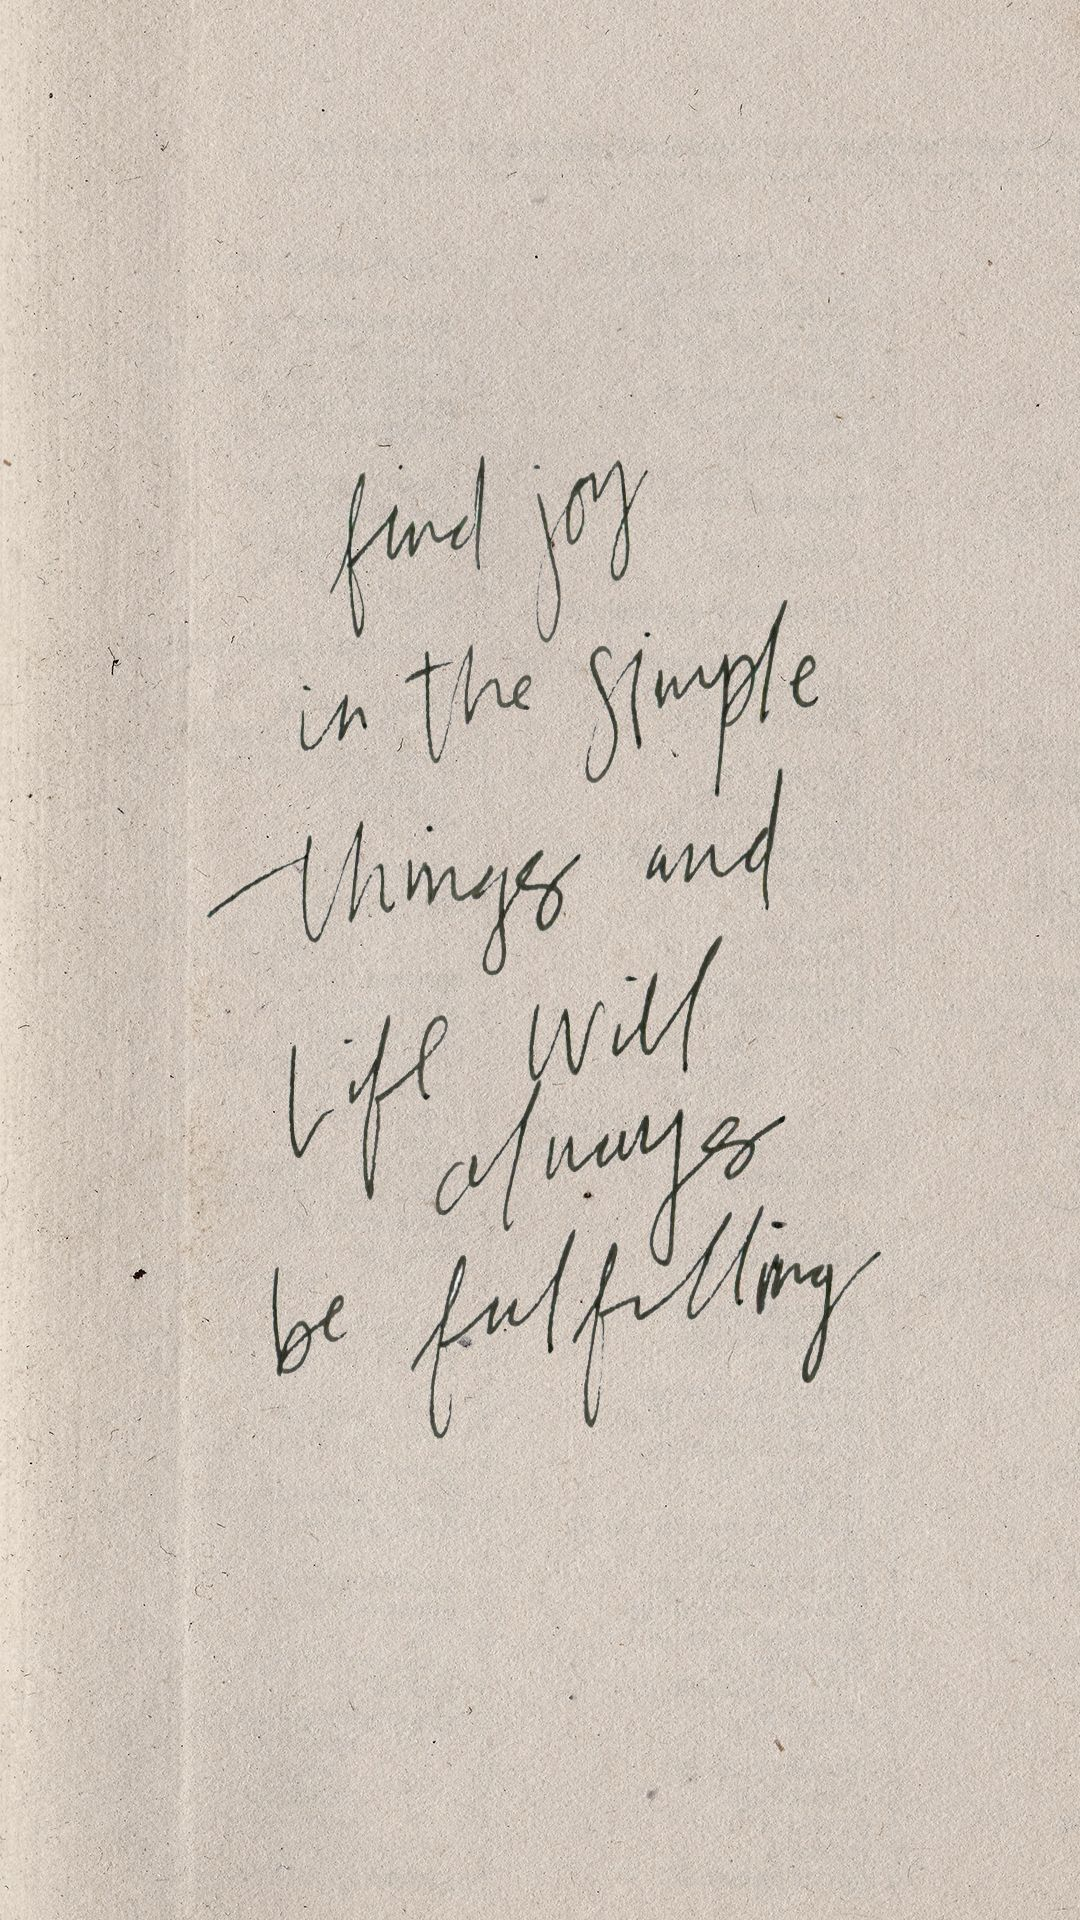 Find Joy In The Simple Things Hand Lettered Quotes Tatiana Soash Tatiana Soash Hand Lettered Inspirat Joy Quotes Inspirational Quotes Lettering Quotes